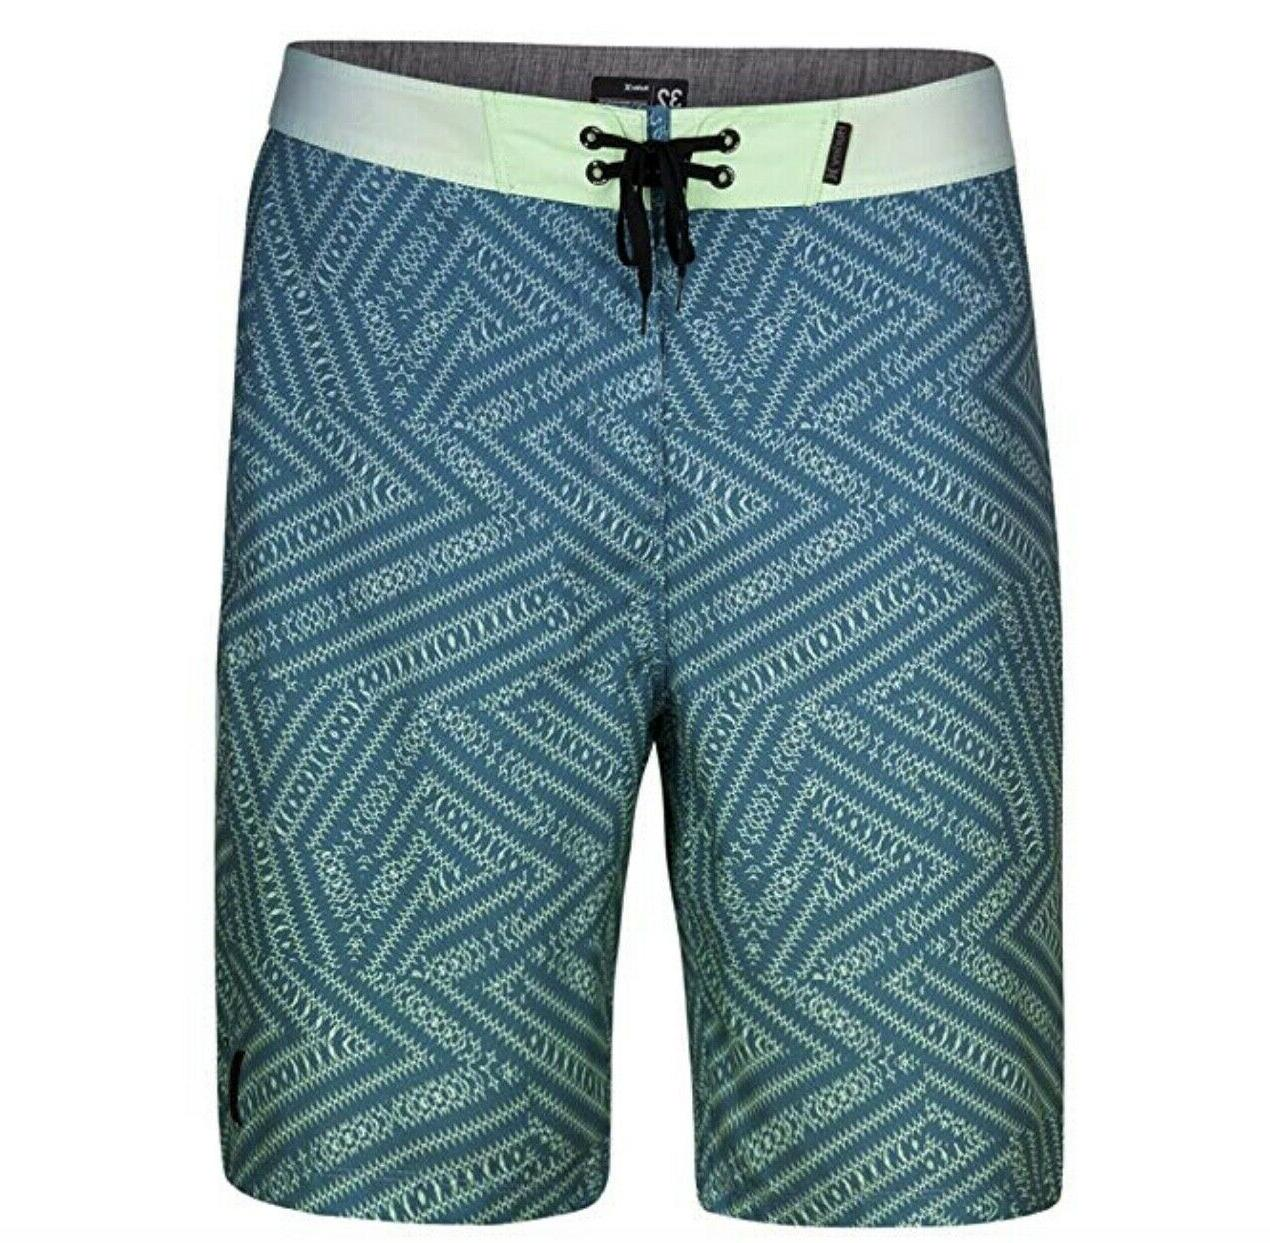 "Hurley Men's Crosswinds 21"" Boardshorts Aqua Green Supersued"